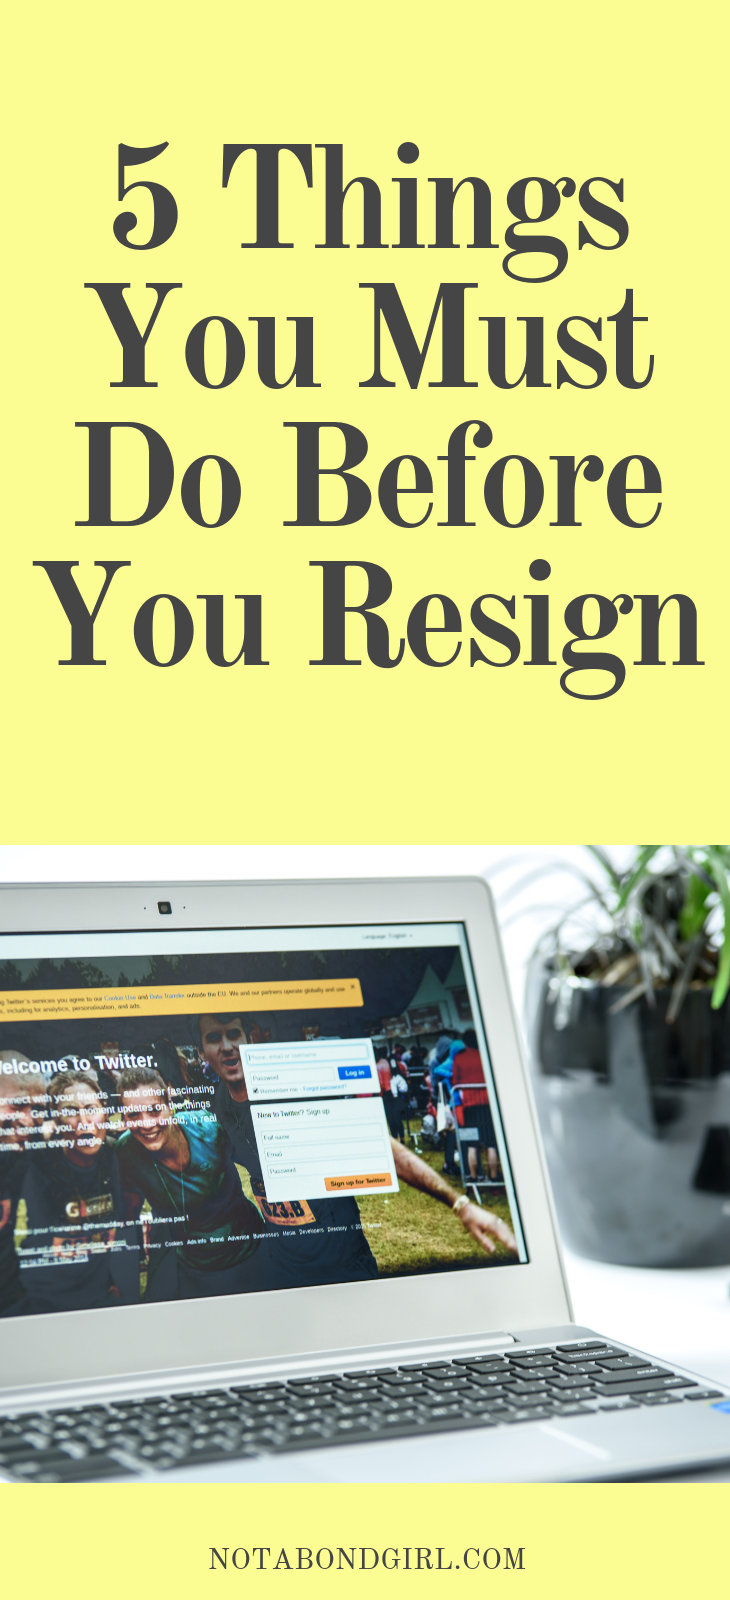 5 Things You Must Do Before You Resign; before resign, how to resign, resign from job, how to quit job, best way to resign, resign from work